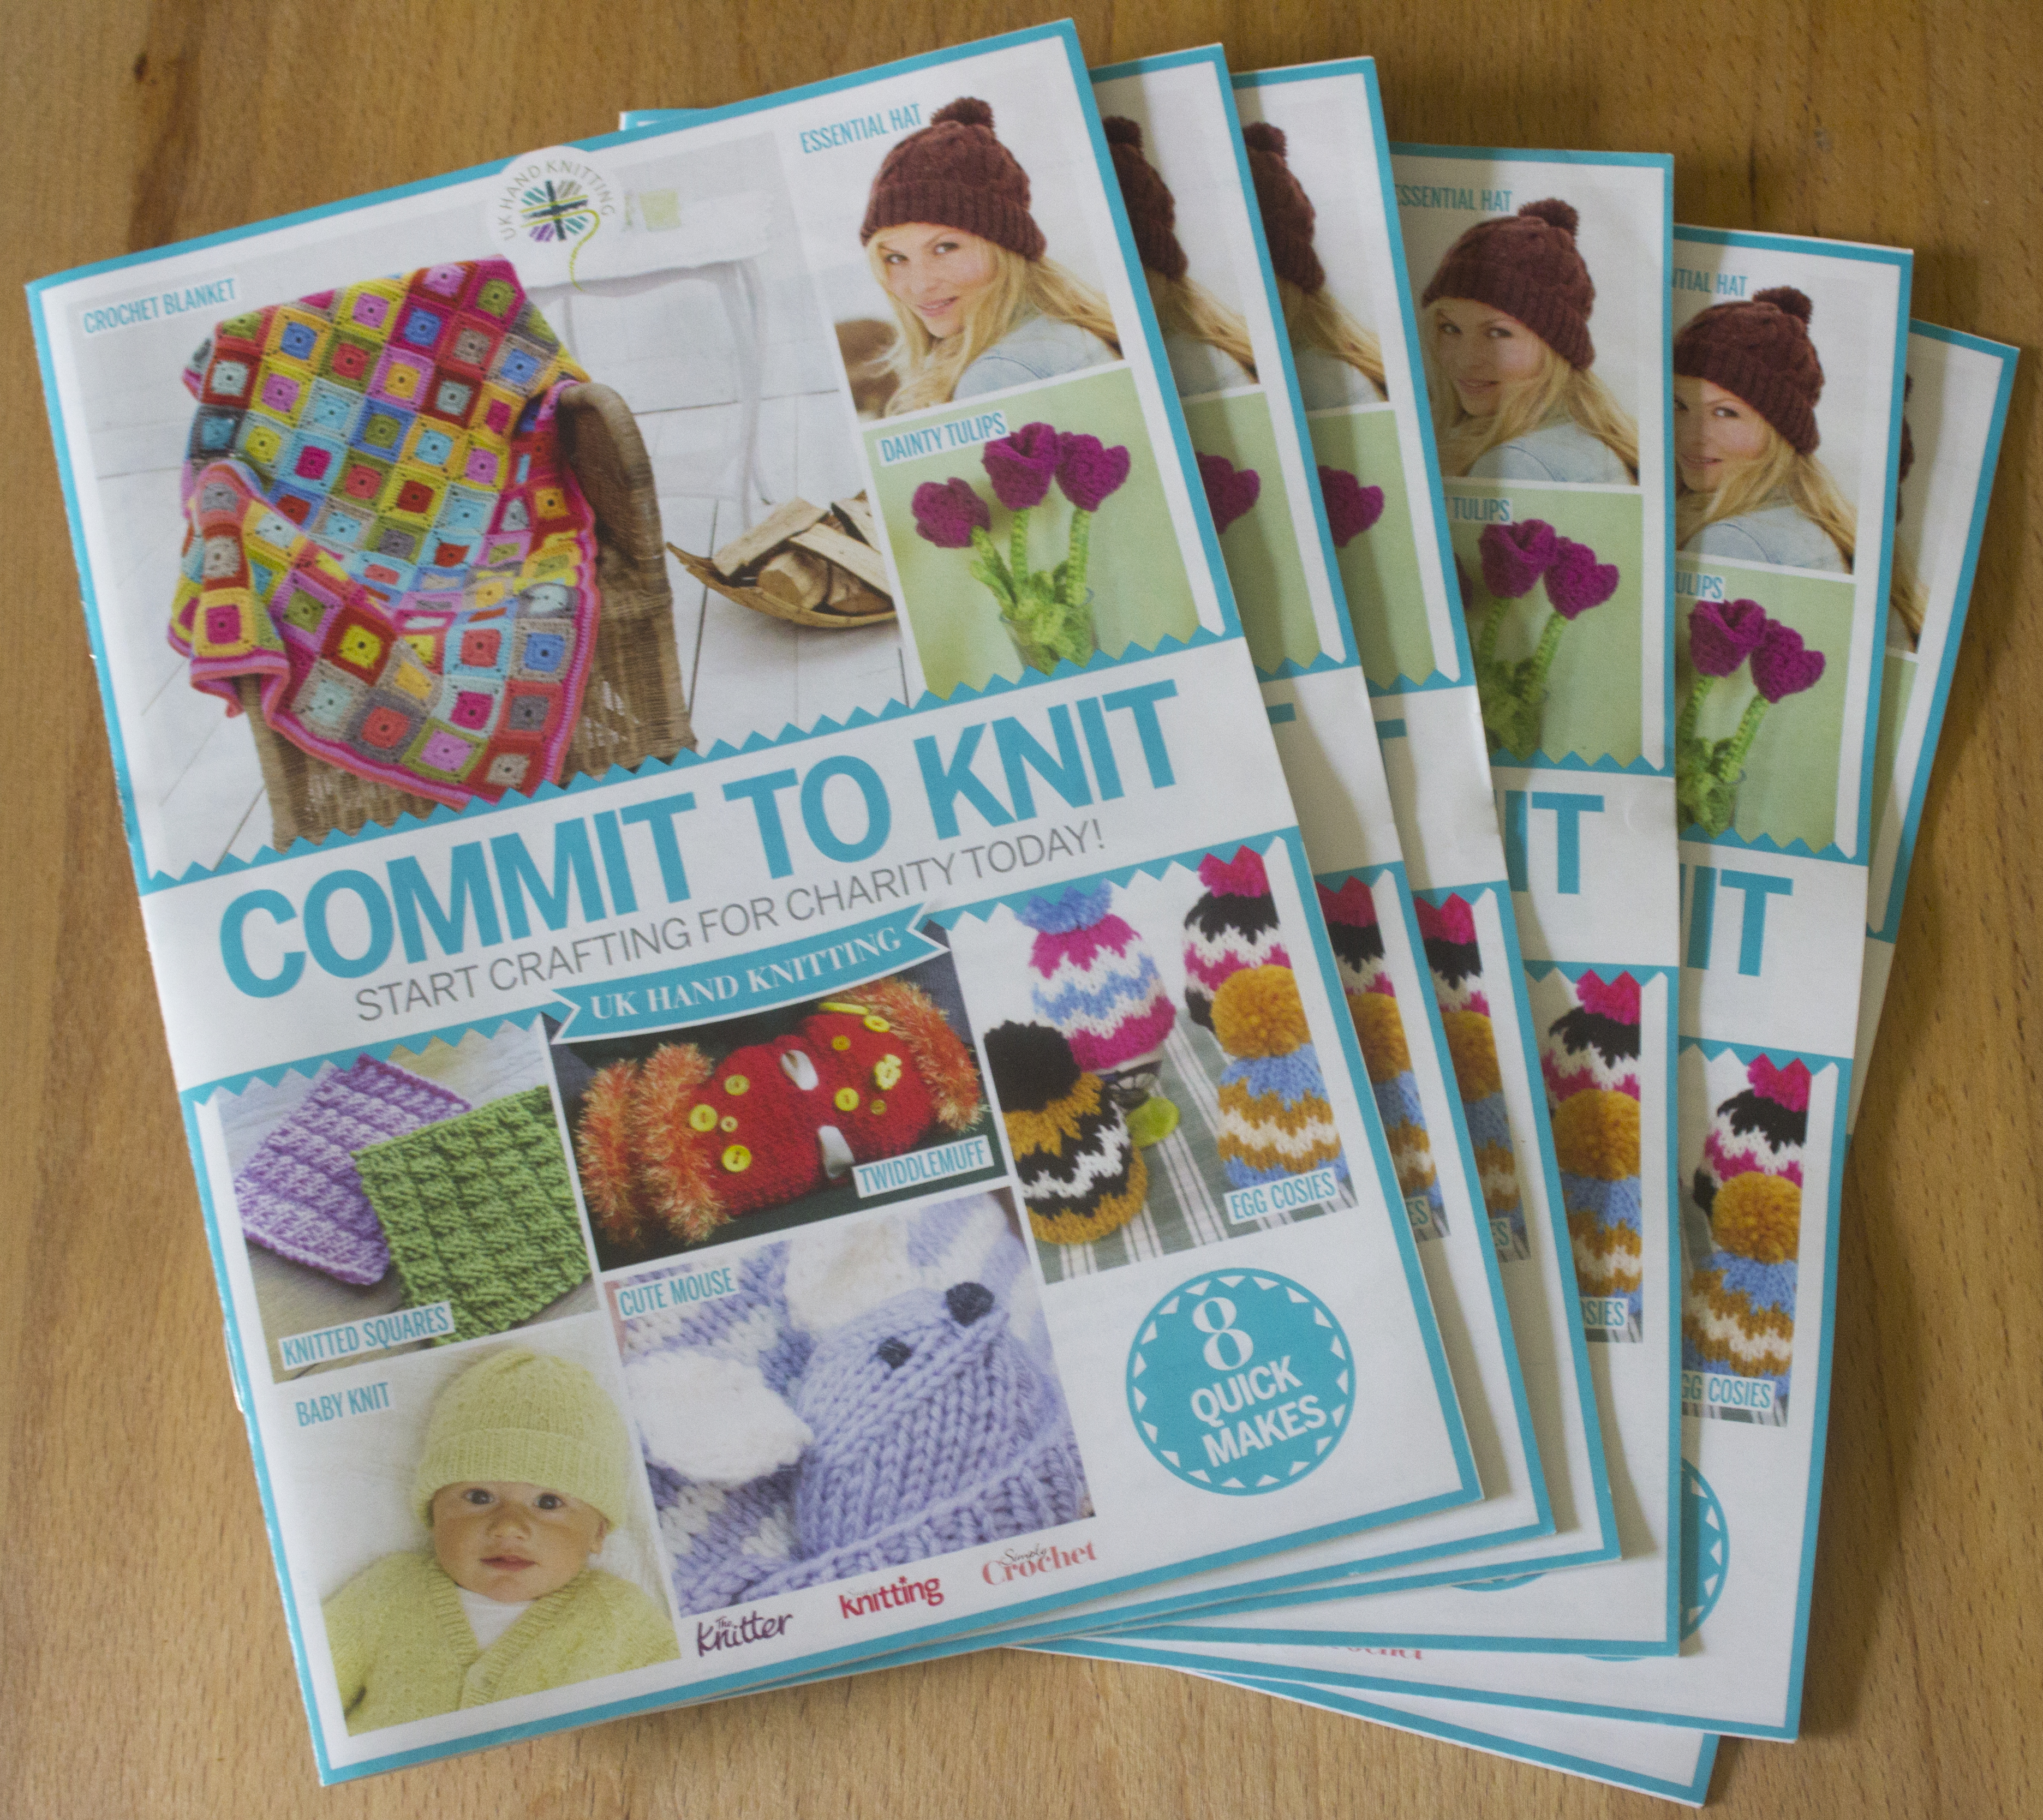 Why we like to knit for charity